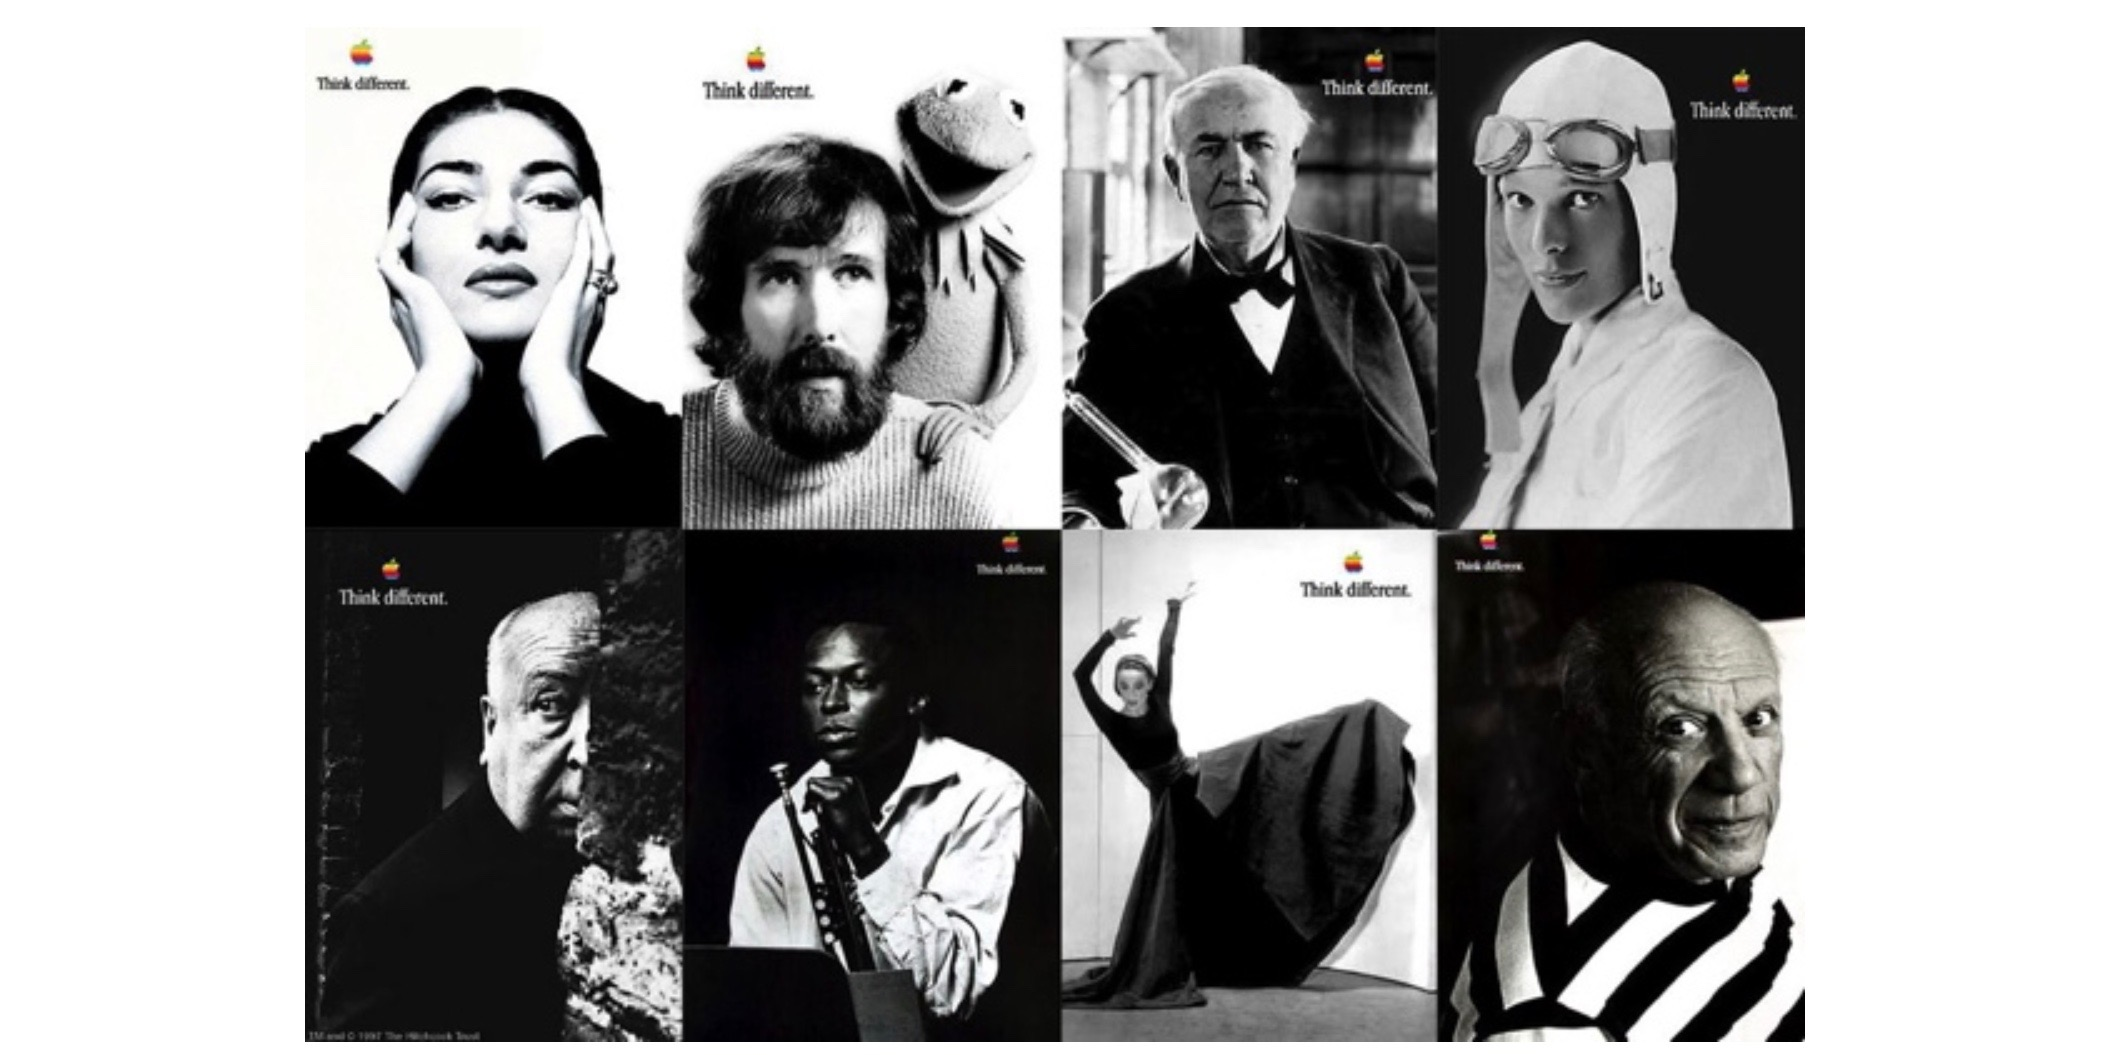 Mastermind behind Apple's 'Think Different' and 'Get a Mac' ad campaigns retires